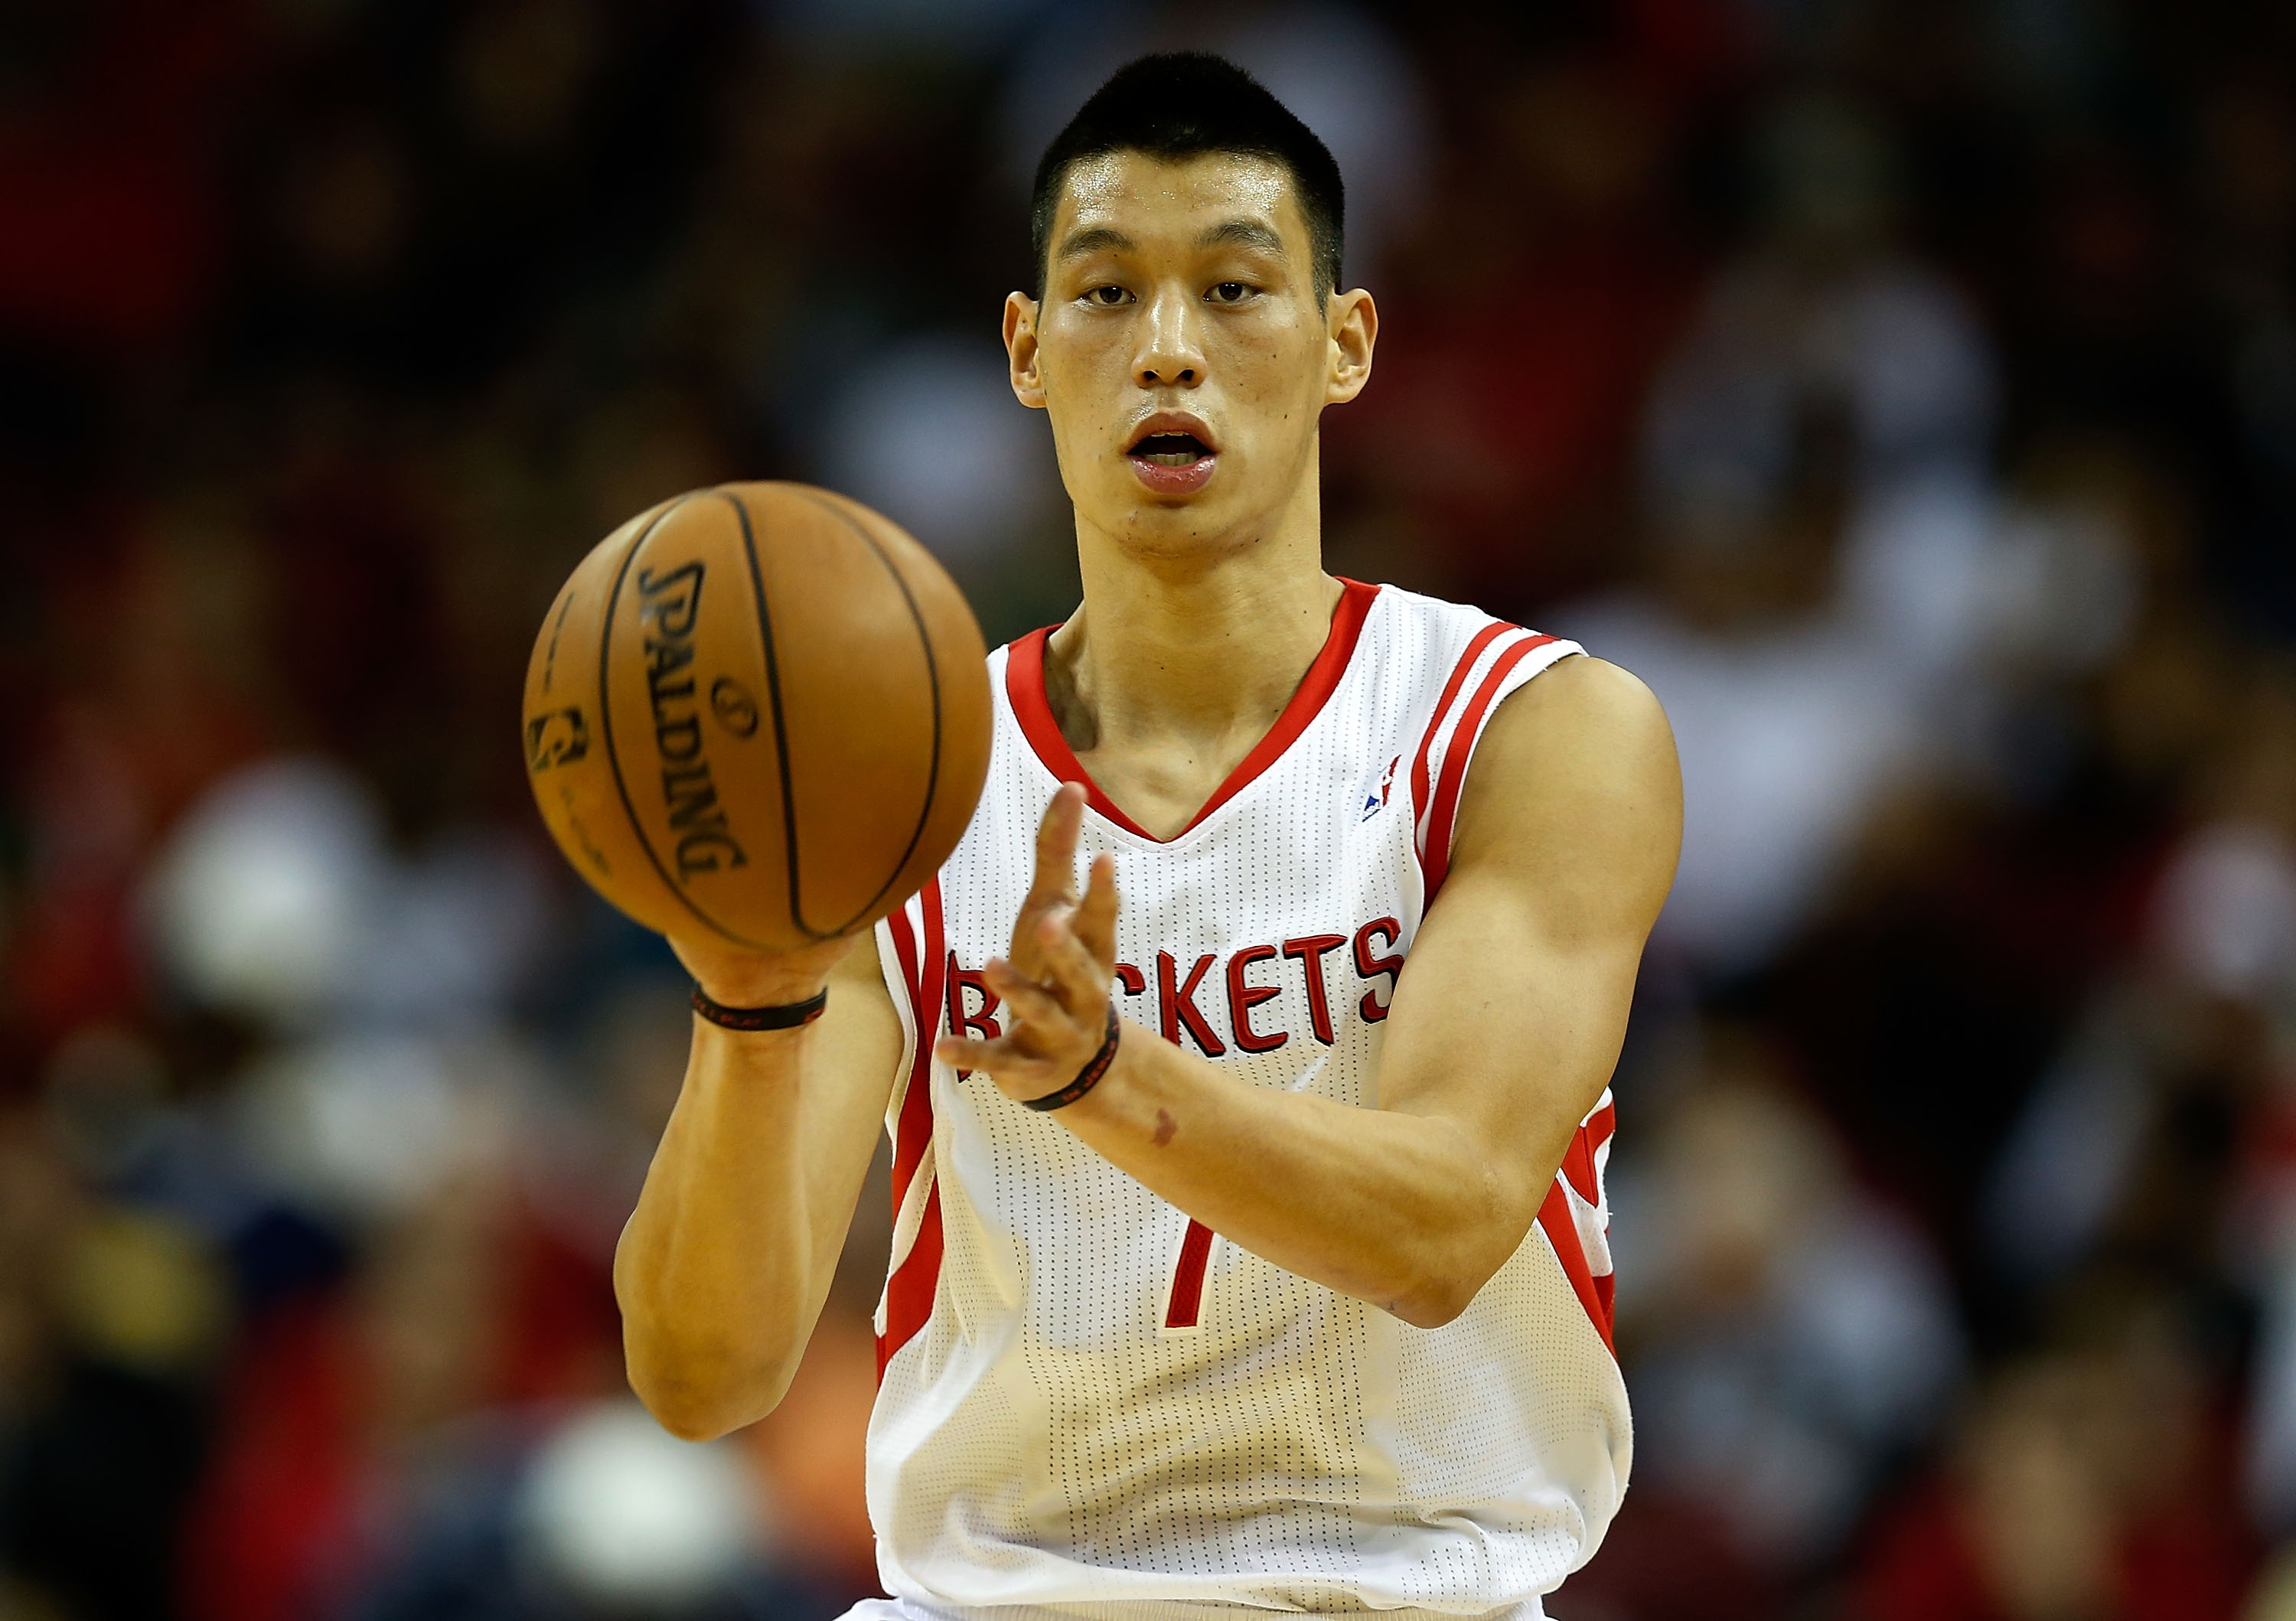 Jeremy Lin received a three-year, $25 million contract from the Rockets. (Getty Images)